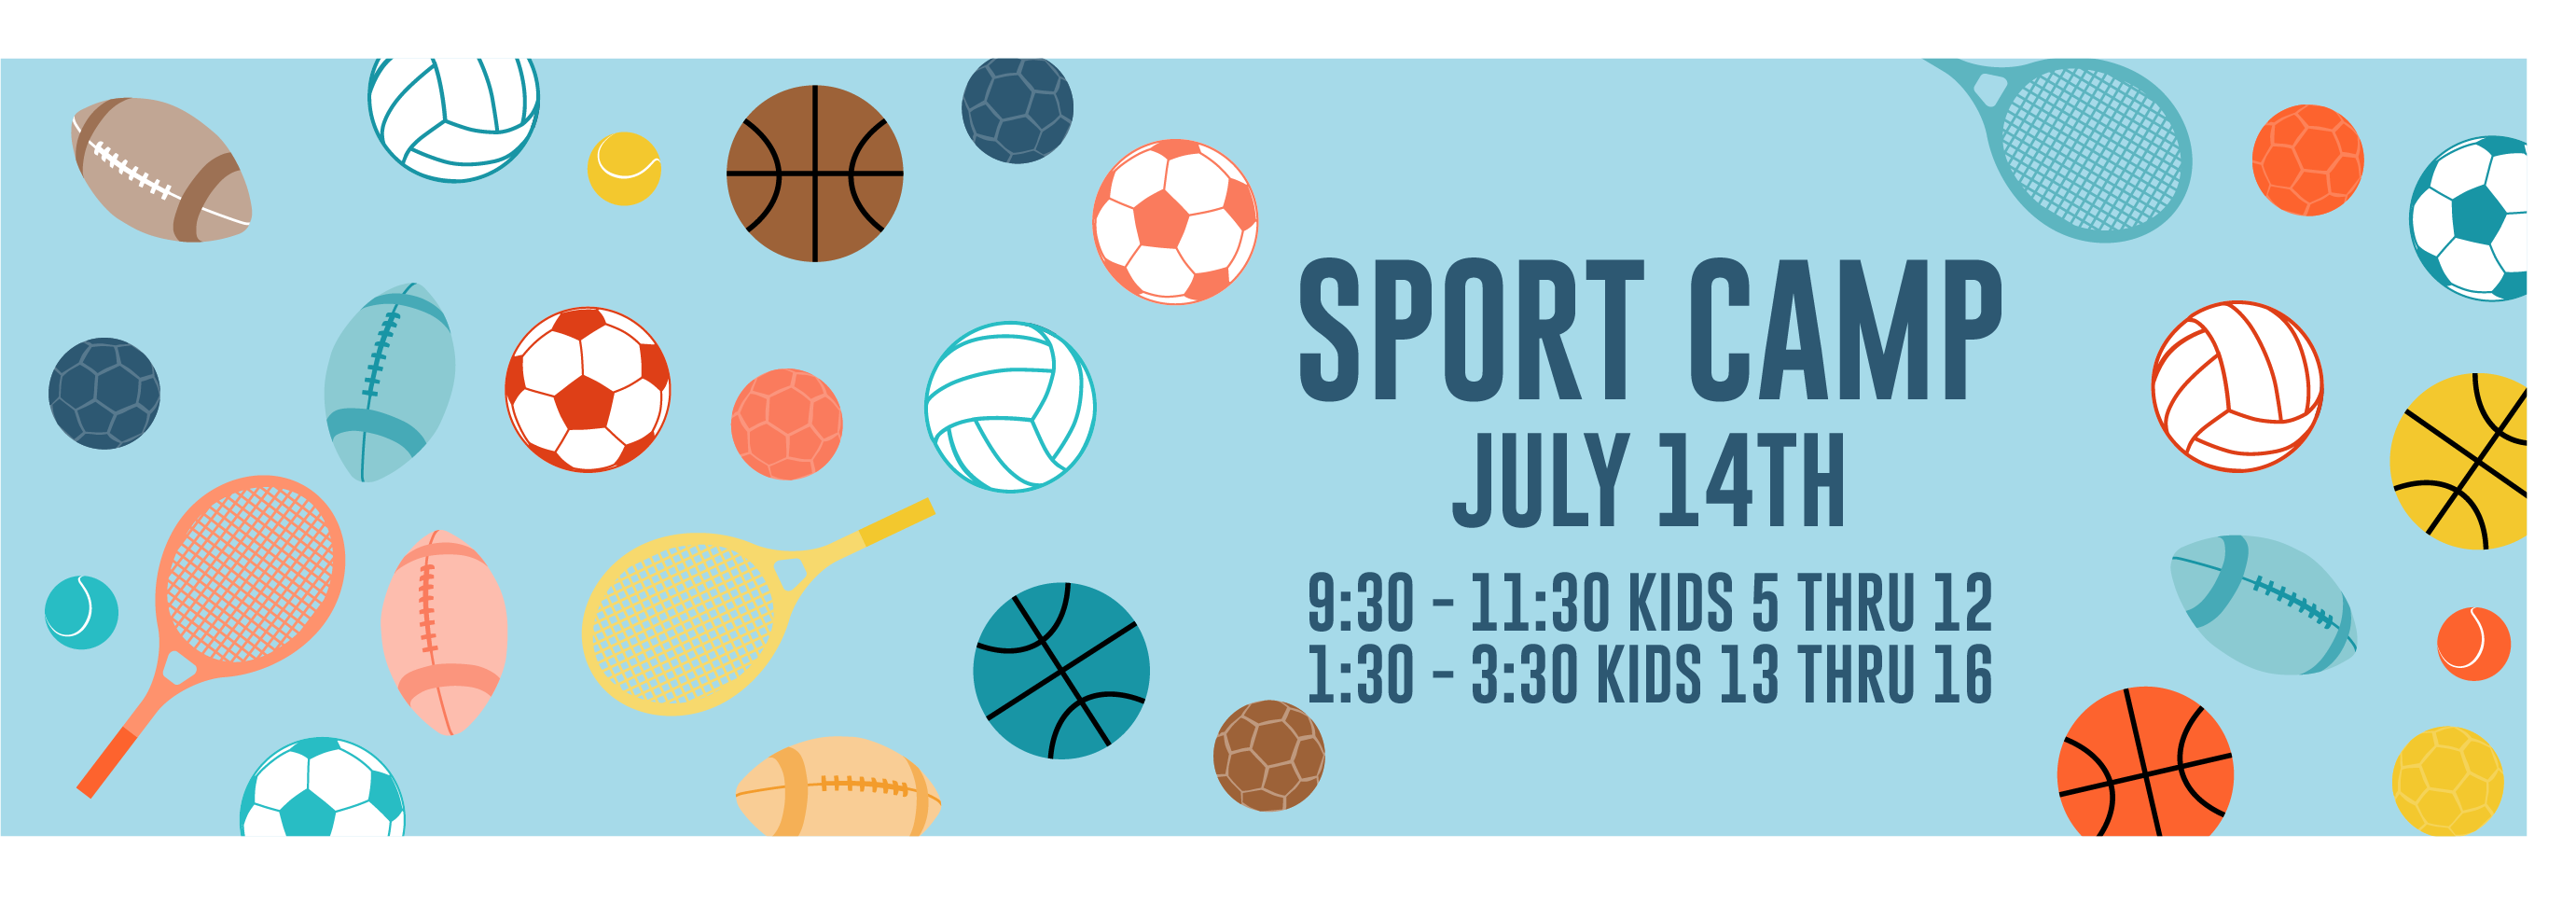 Summer Day Camp - Sports Camp @ The Arc Multi-Purpose Building | Beaumont | Texas | United States